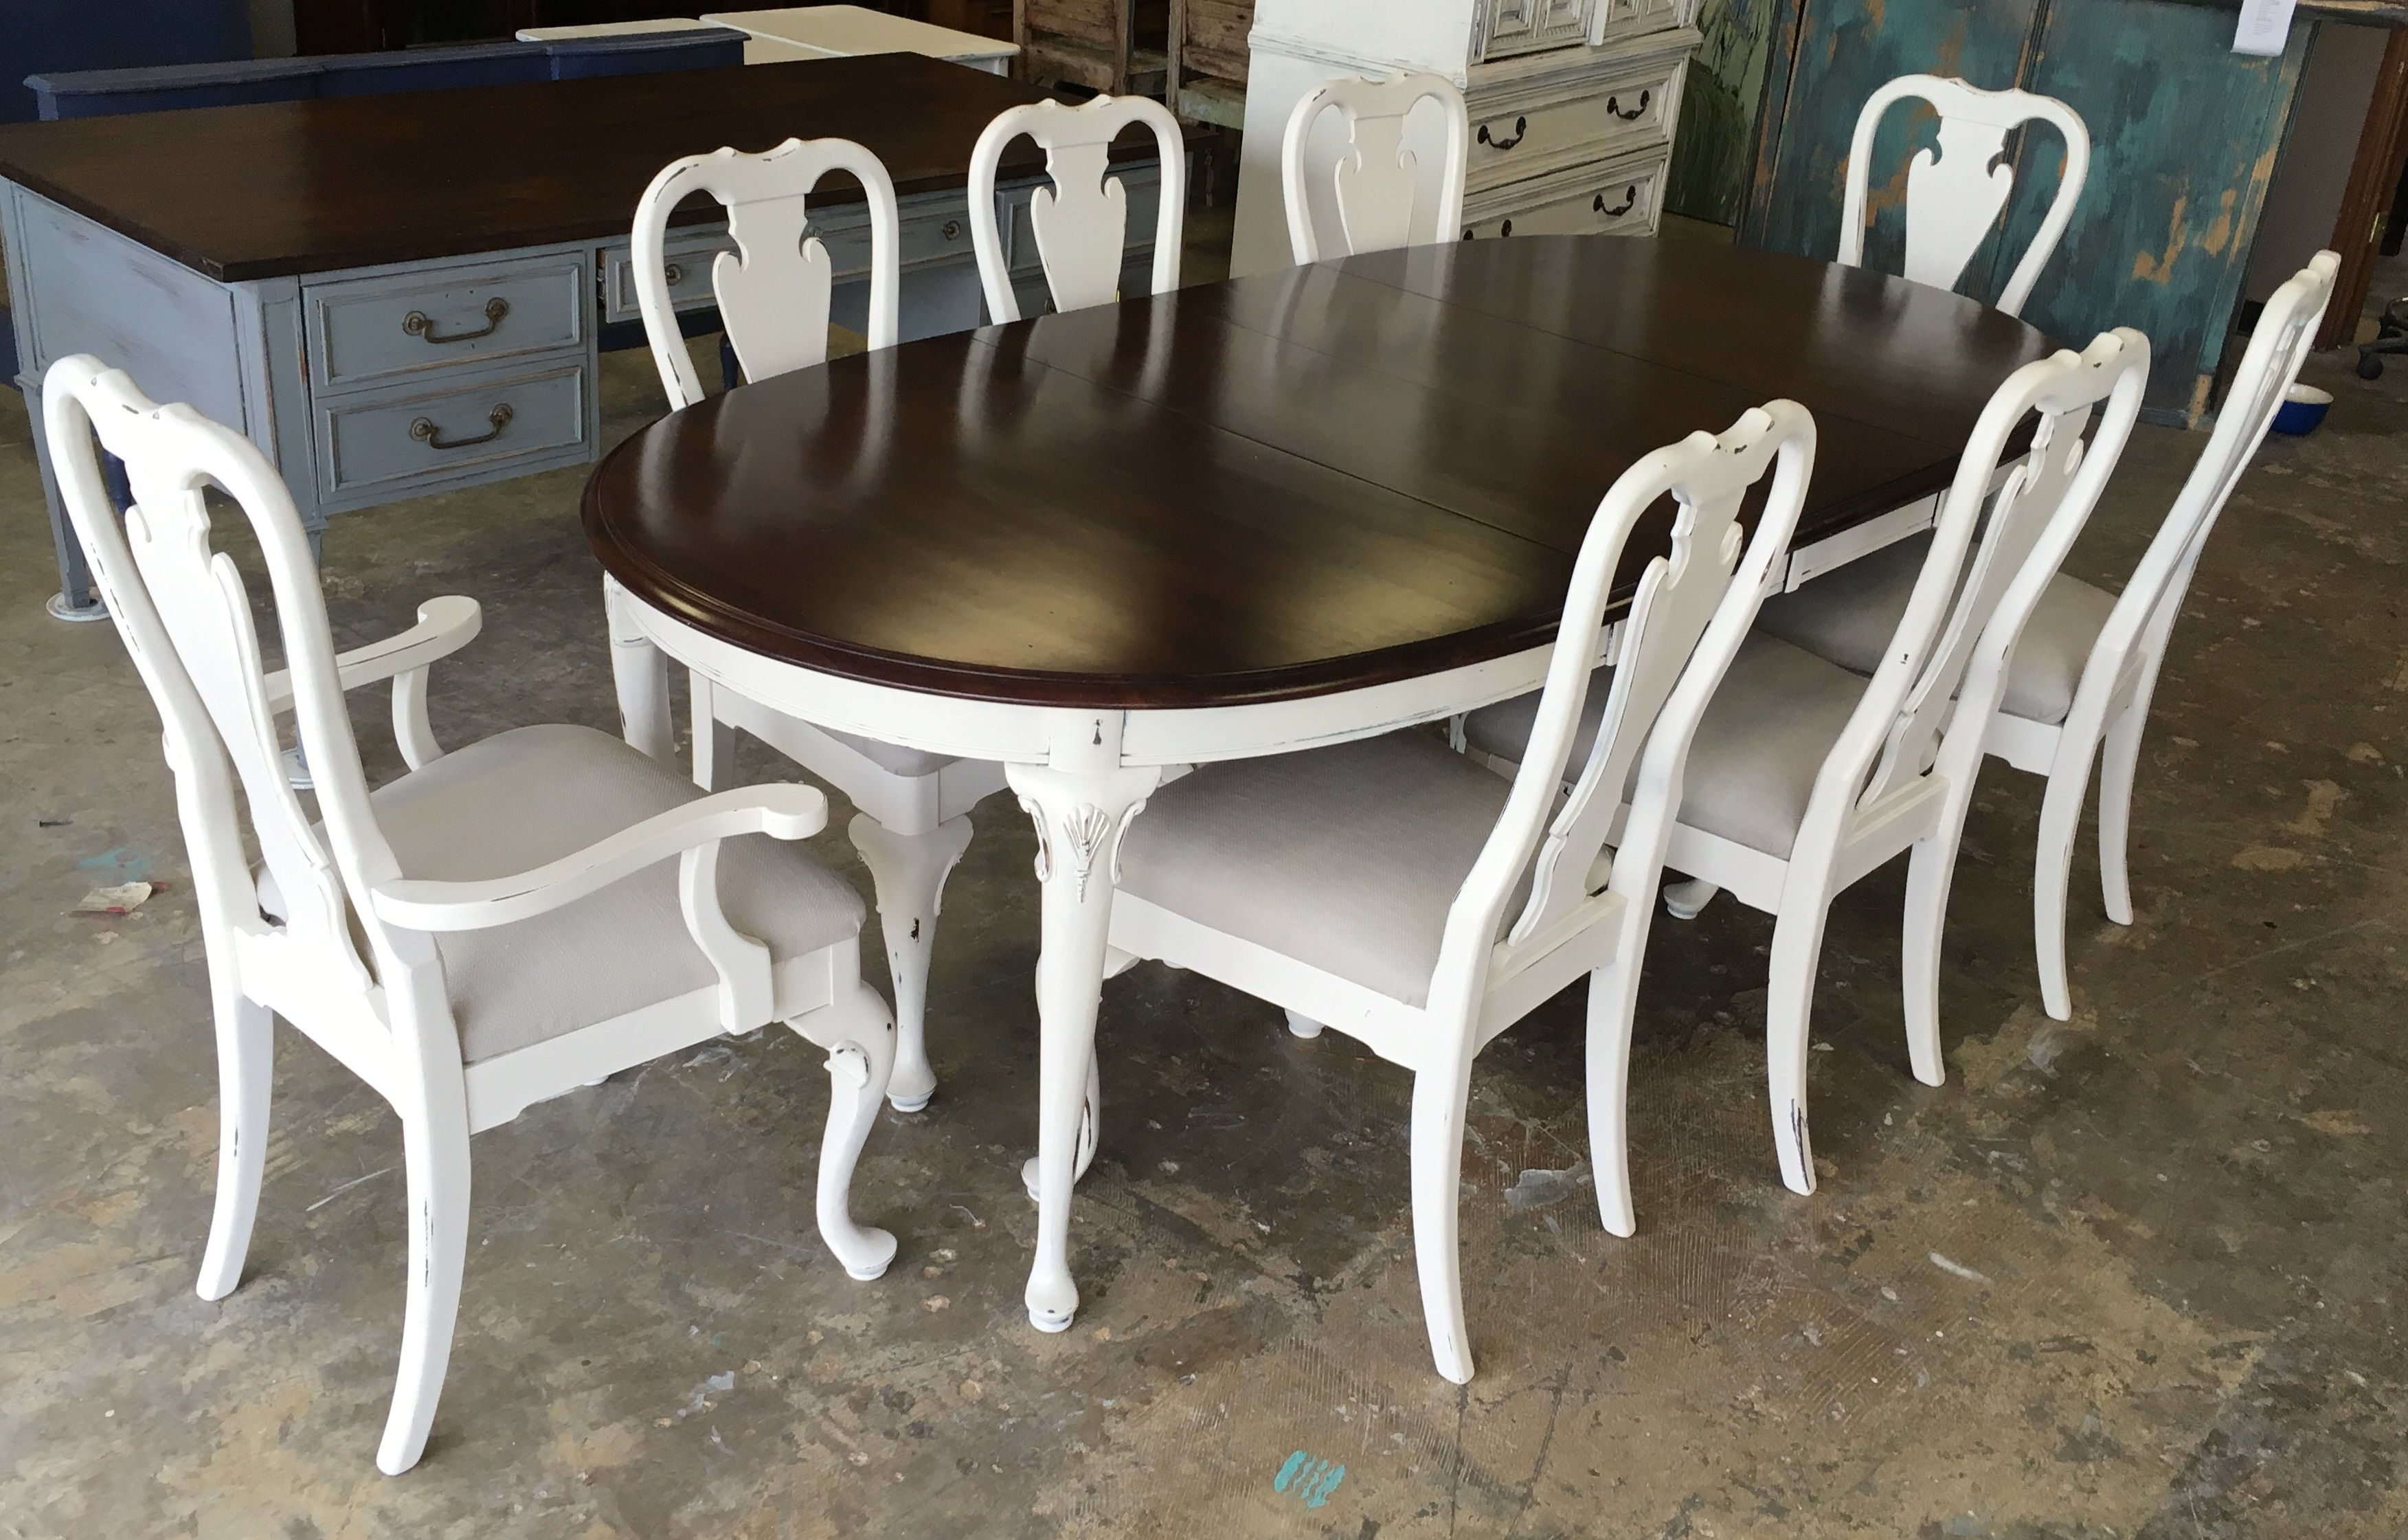 This Table Is For A Texas Sized Dining Room Lol It Is 8 Feet Long With The Leafs And Comes W Shabby Chic Furniture Shabby Chic Dining French Country Furniture